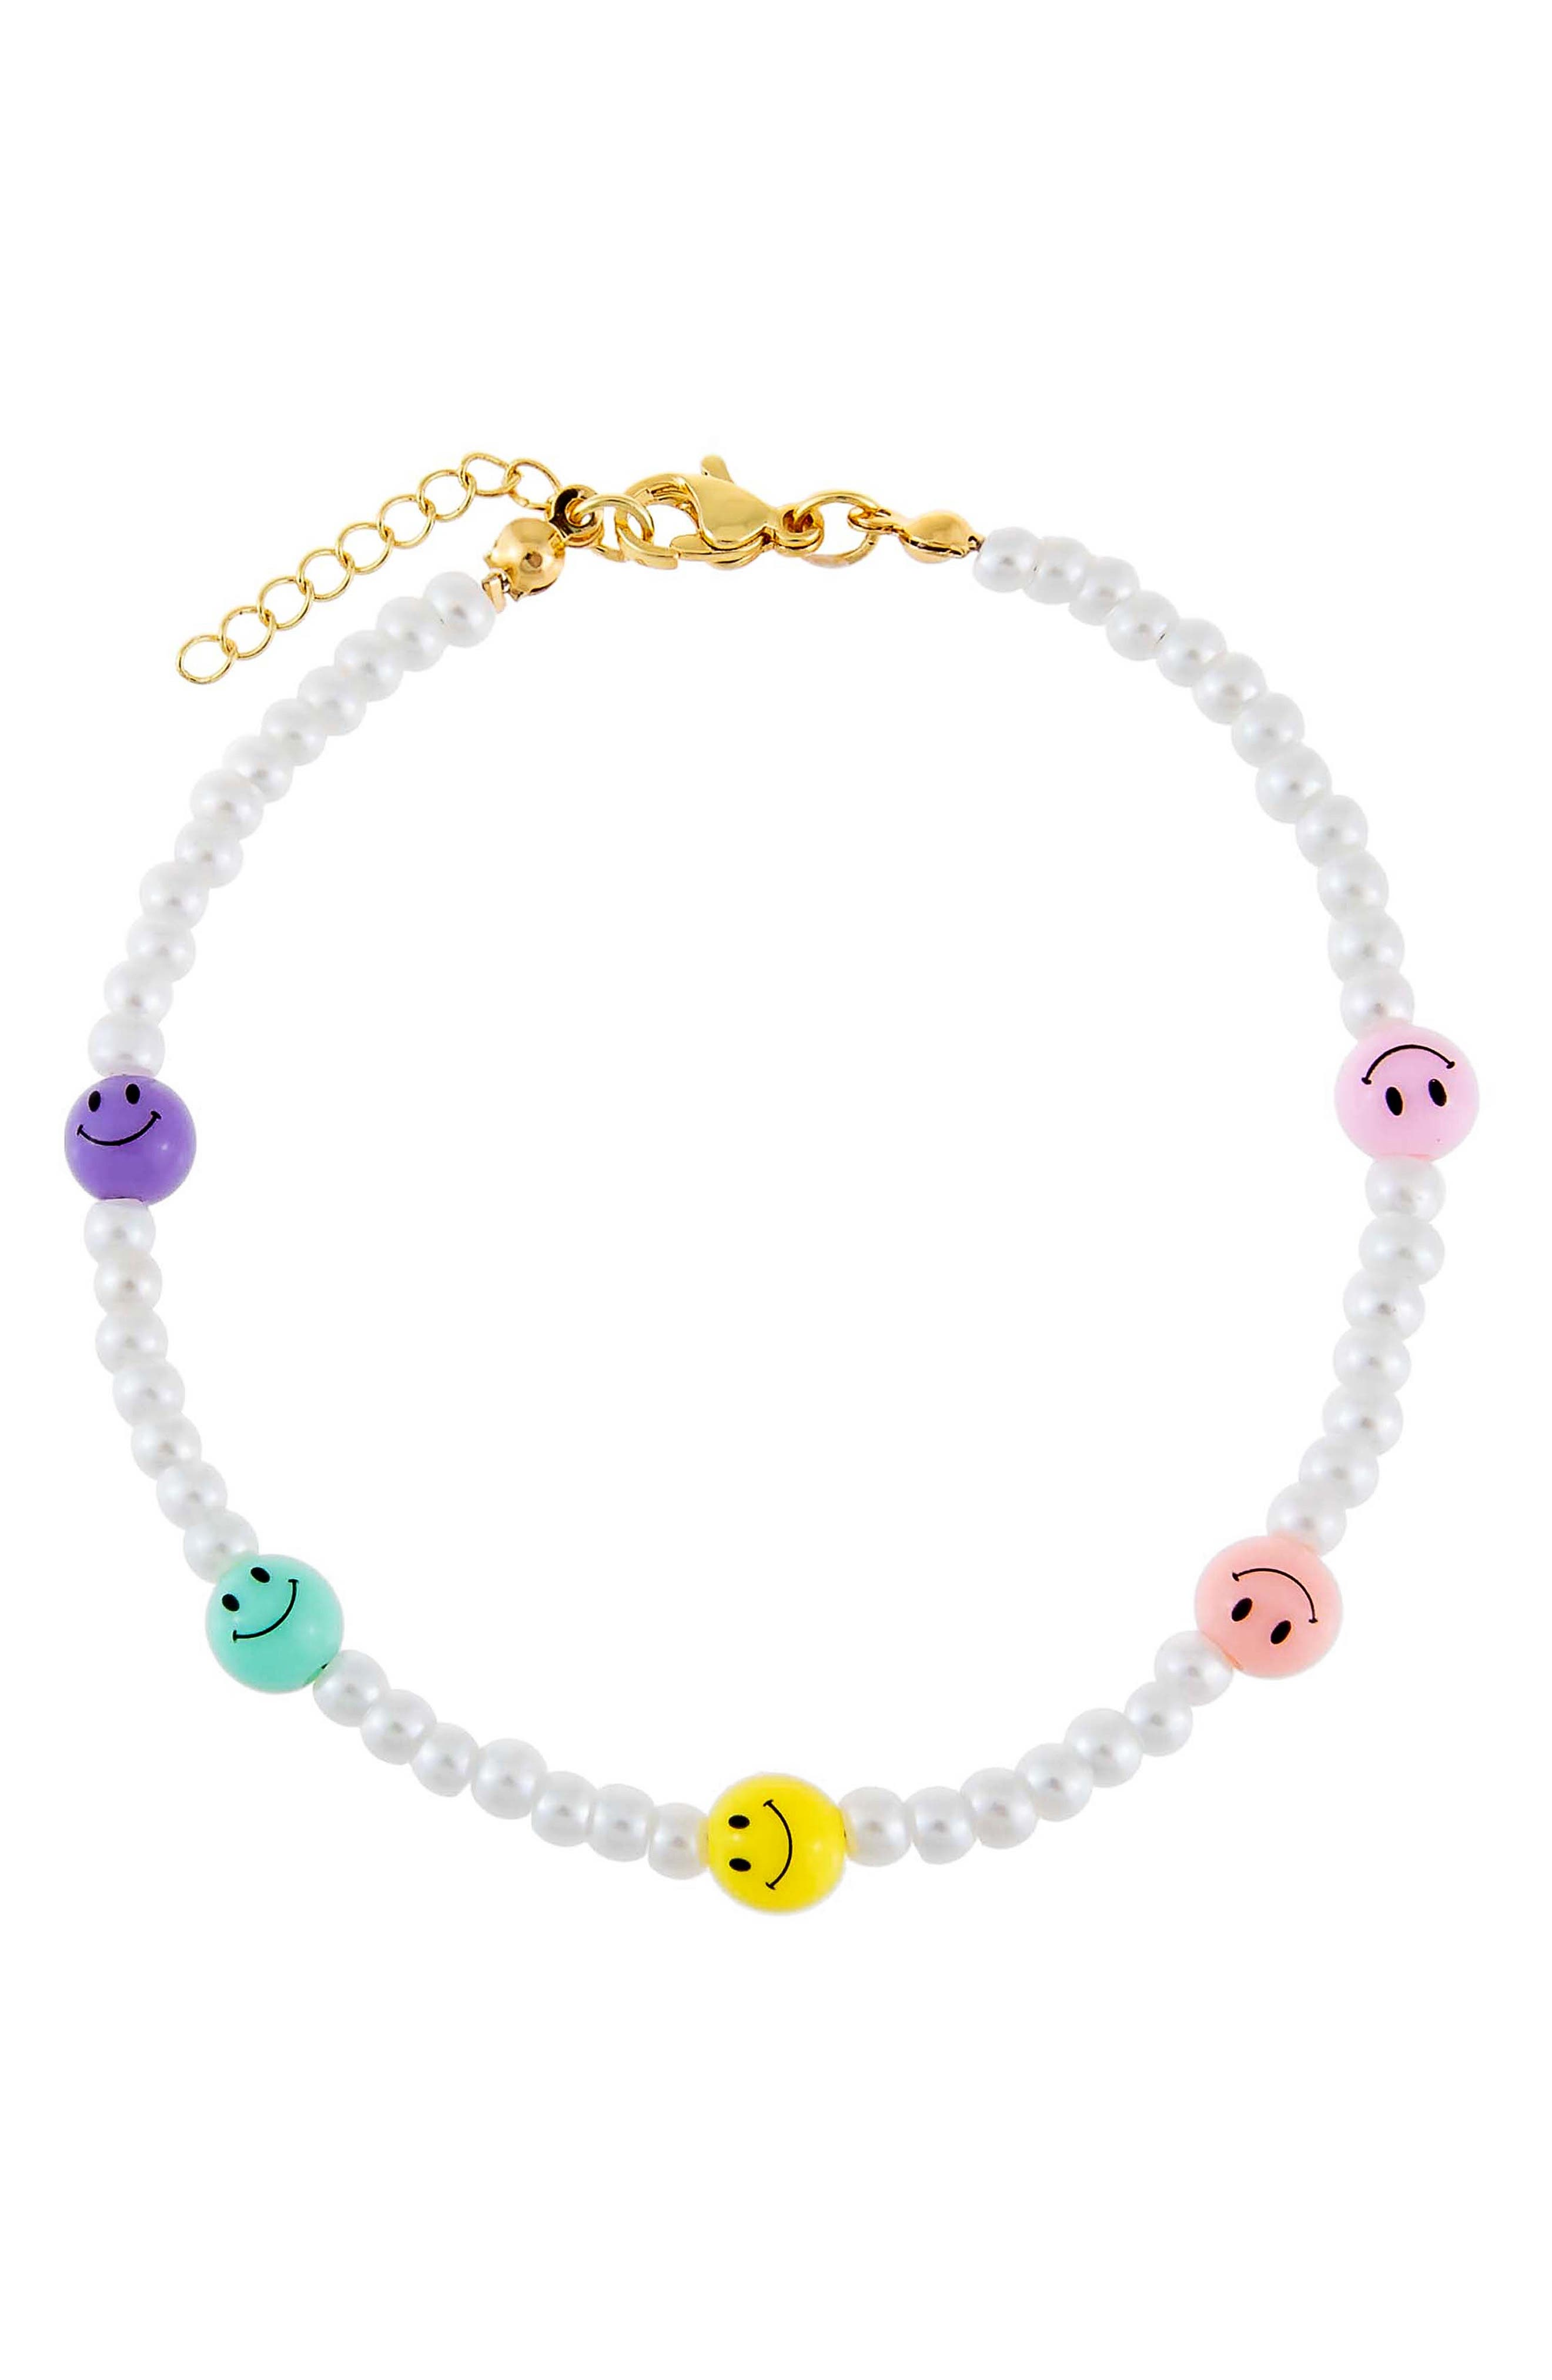 Women's Adina's Jewels Smiley Face & Imitation Pearl Anklet